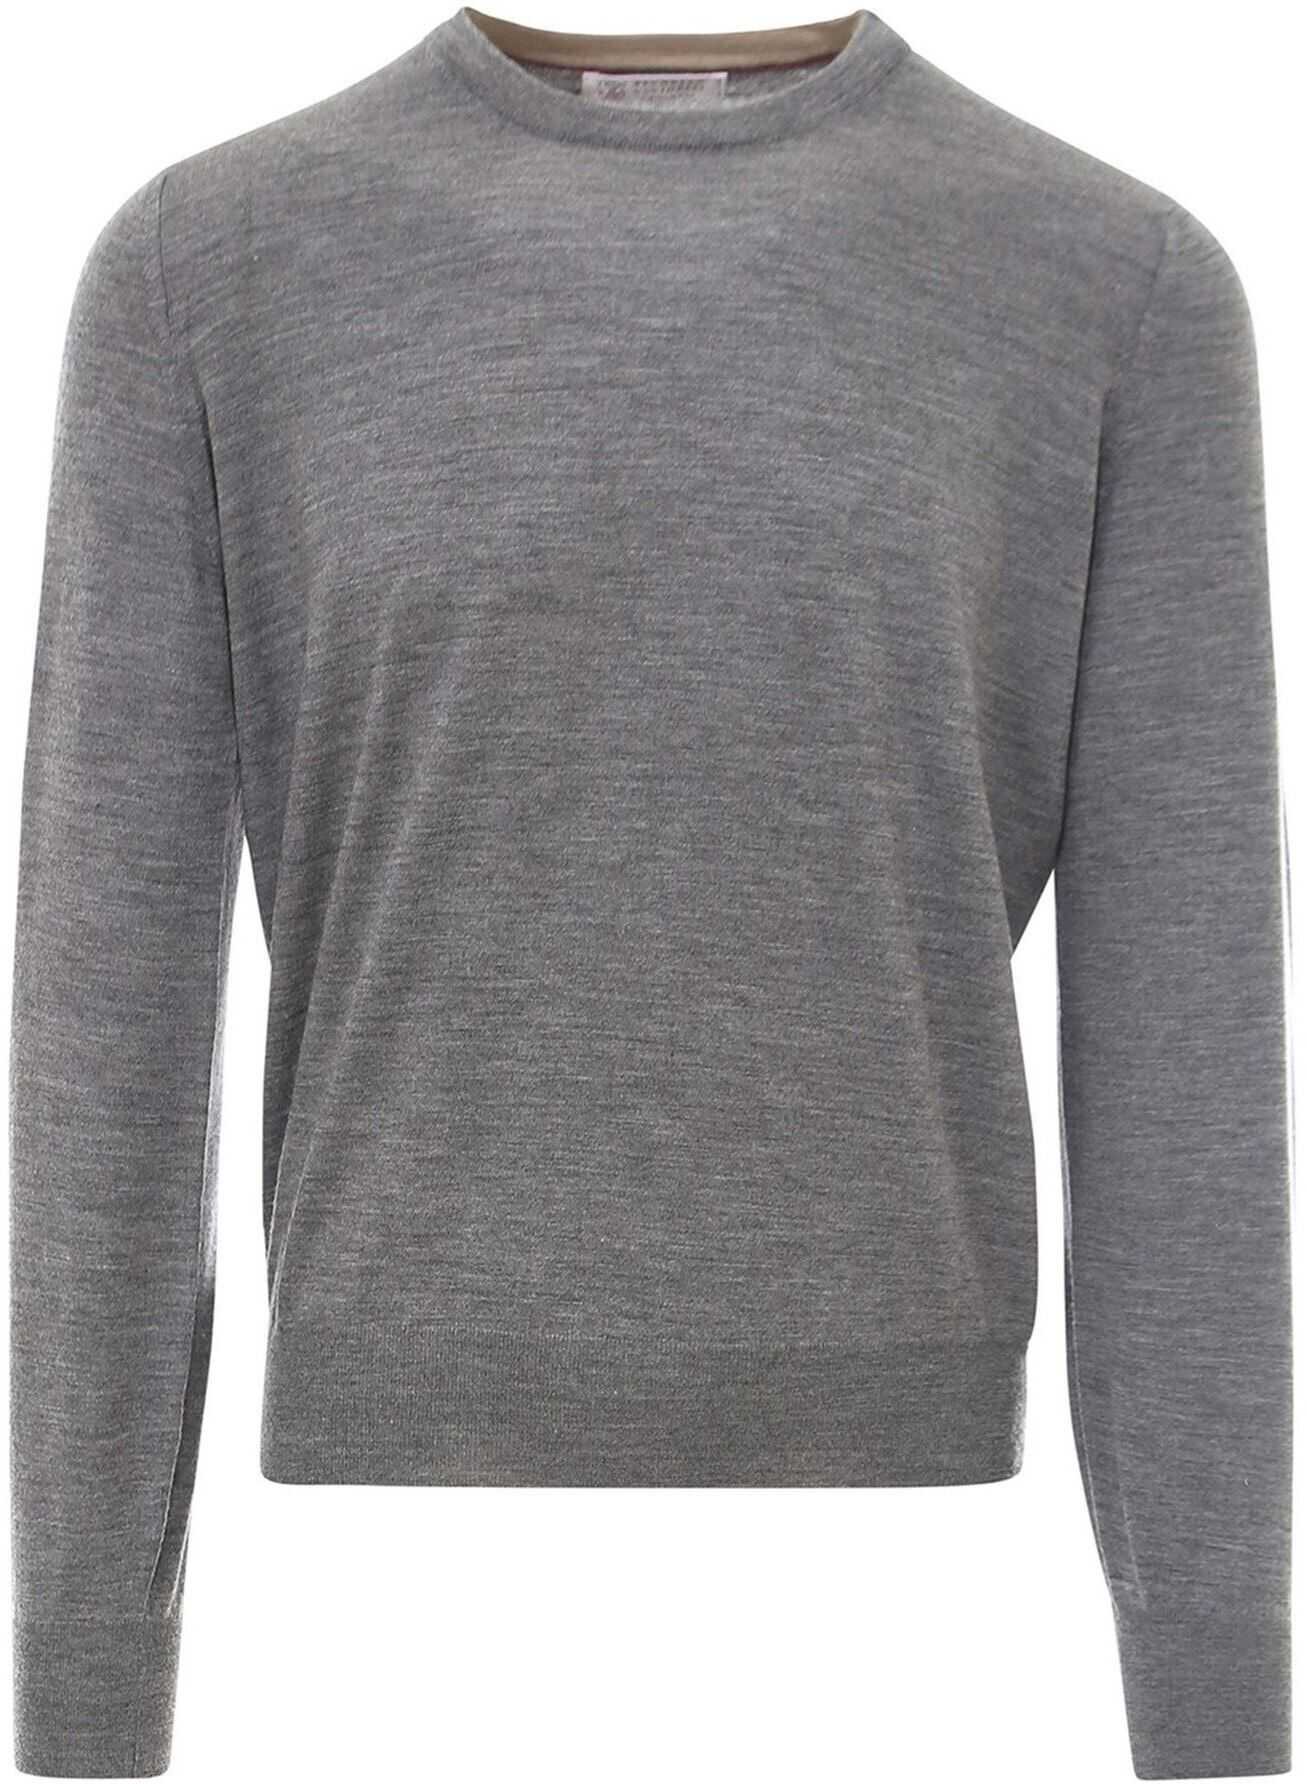 Brunello Cucinelli Wool And Cashmere Grey Sweater In Grey Grey imagine